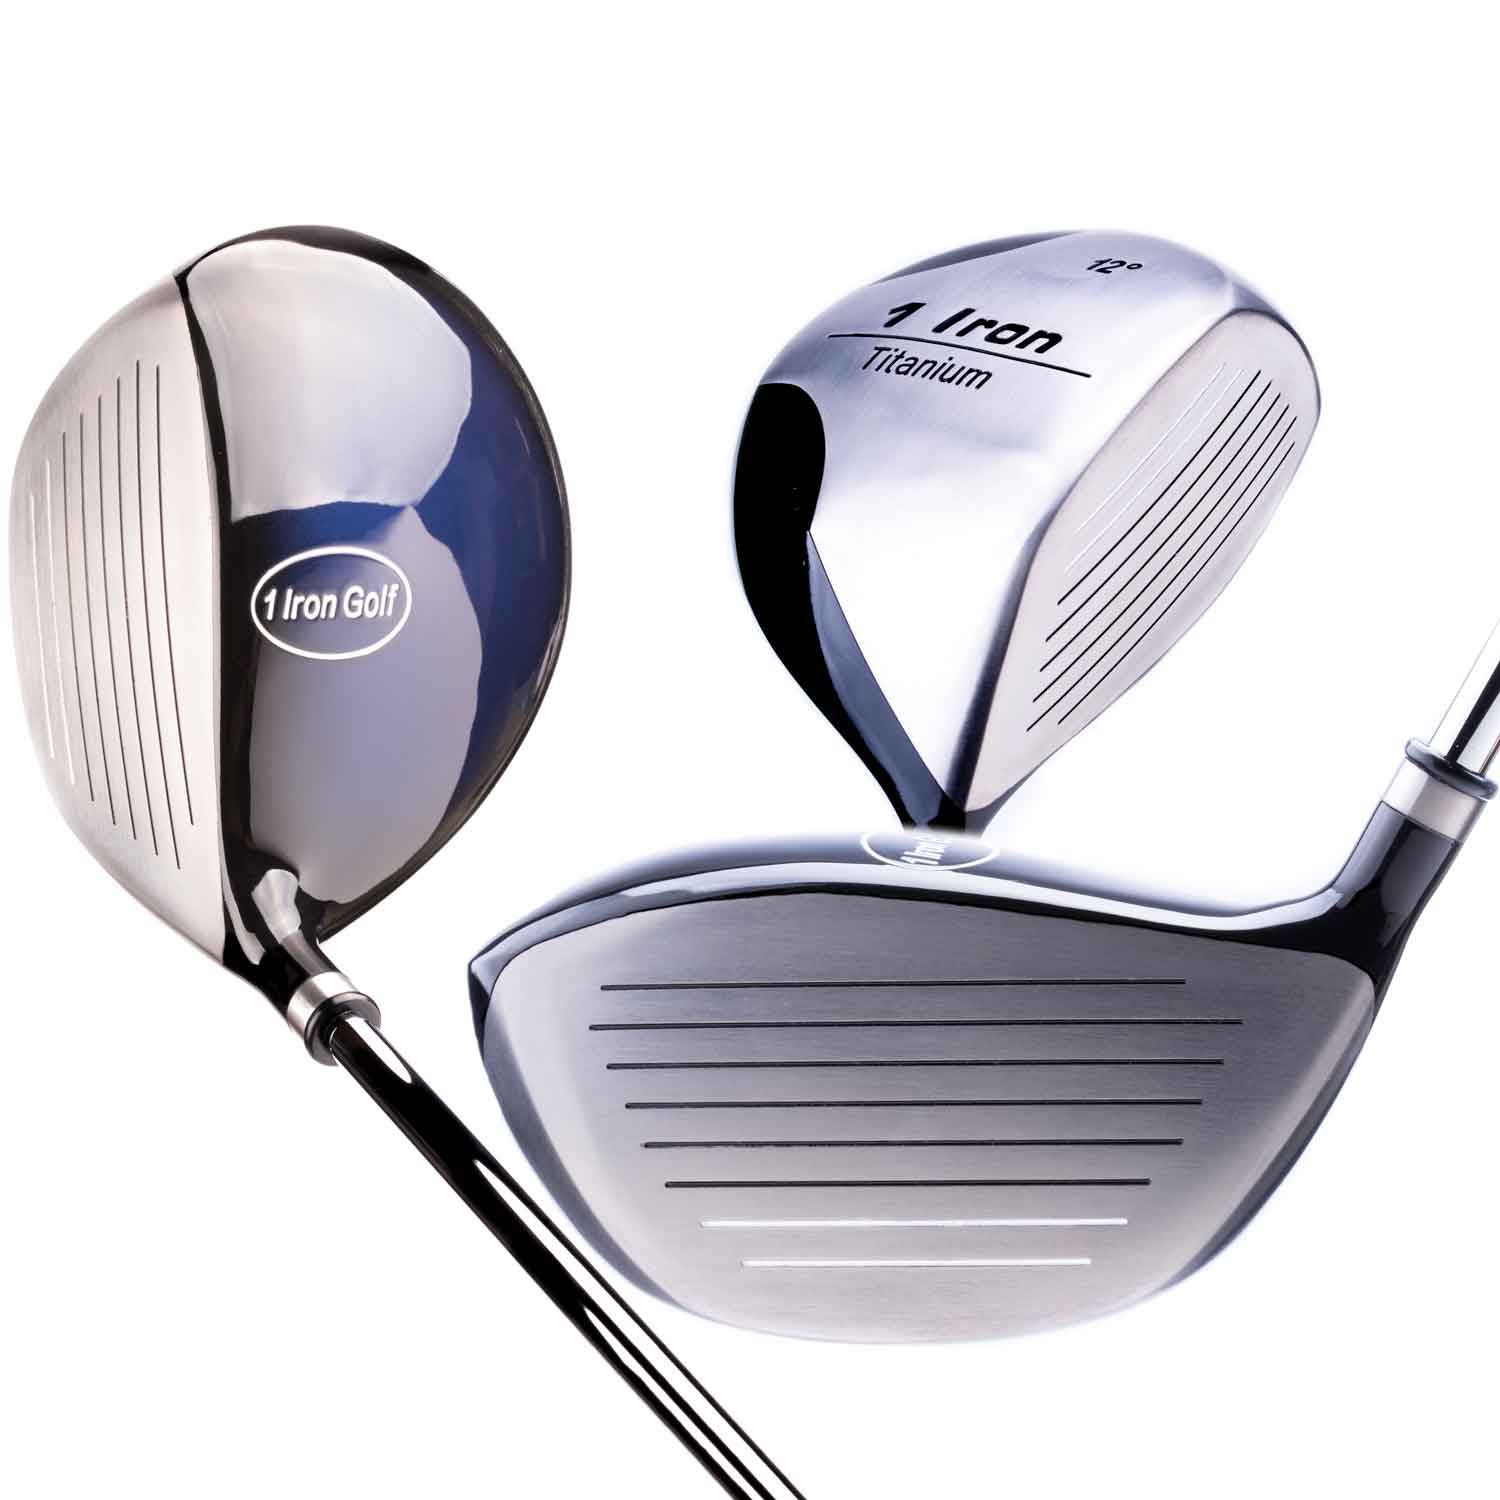 Top, Bottom, and Side View of One Iron Golf's 1 Iron Titanium Driver